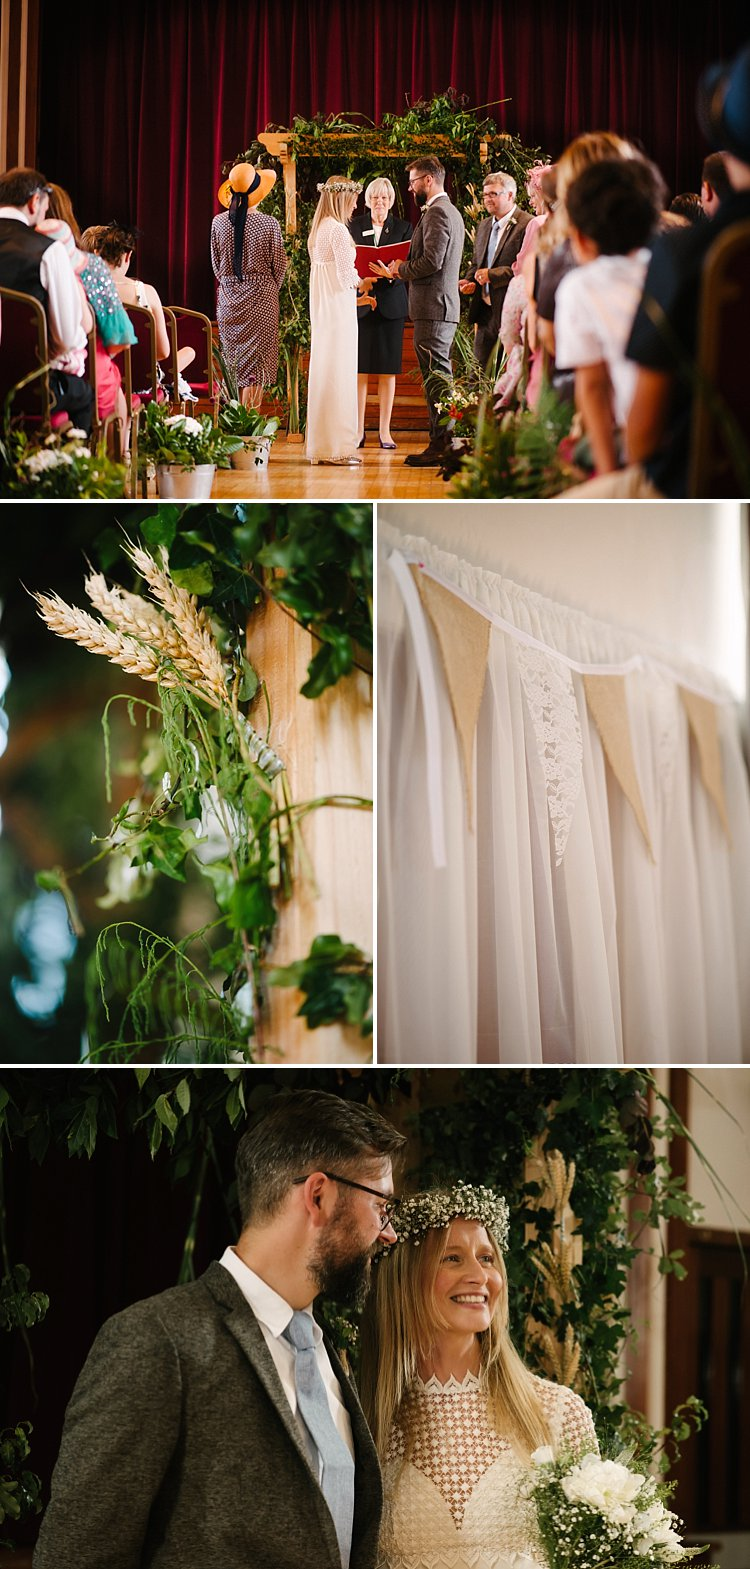 London wedding photographer farm bohemian marquee boho peterborough lincolnshire groovy farm foods chris elly 0005